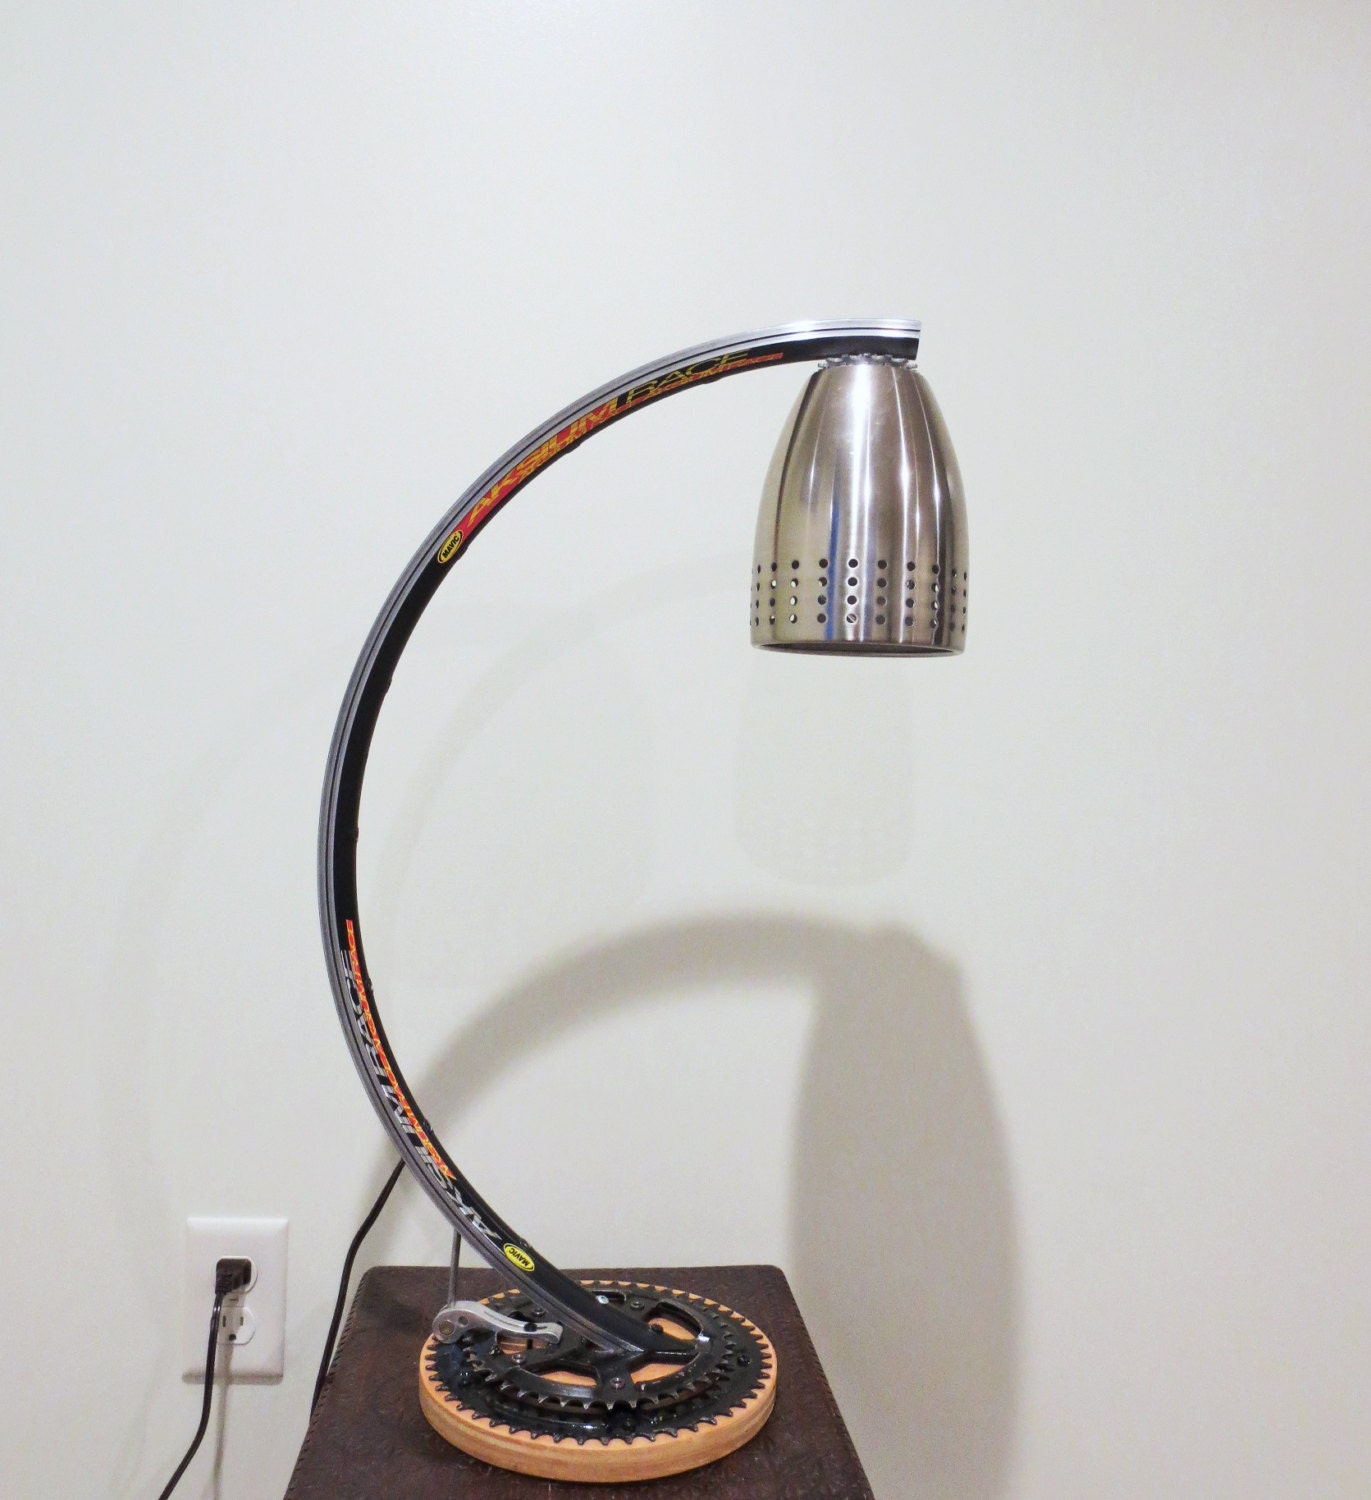 Recycling-Fahrrad Lampe Upcycled Lampe Beleuchtung umgewidmet